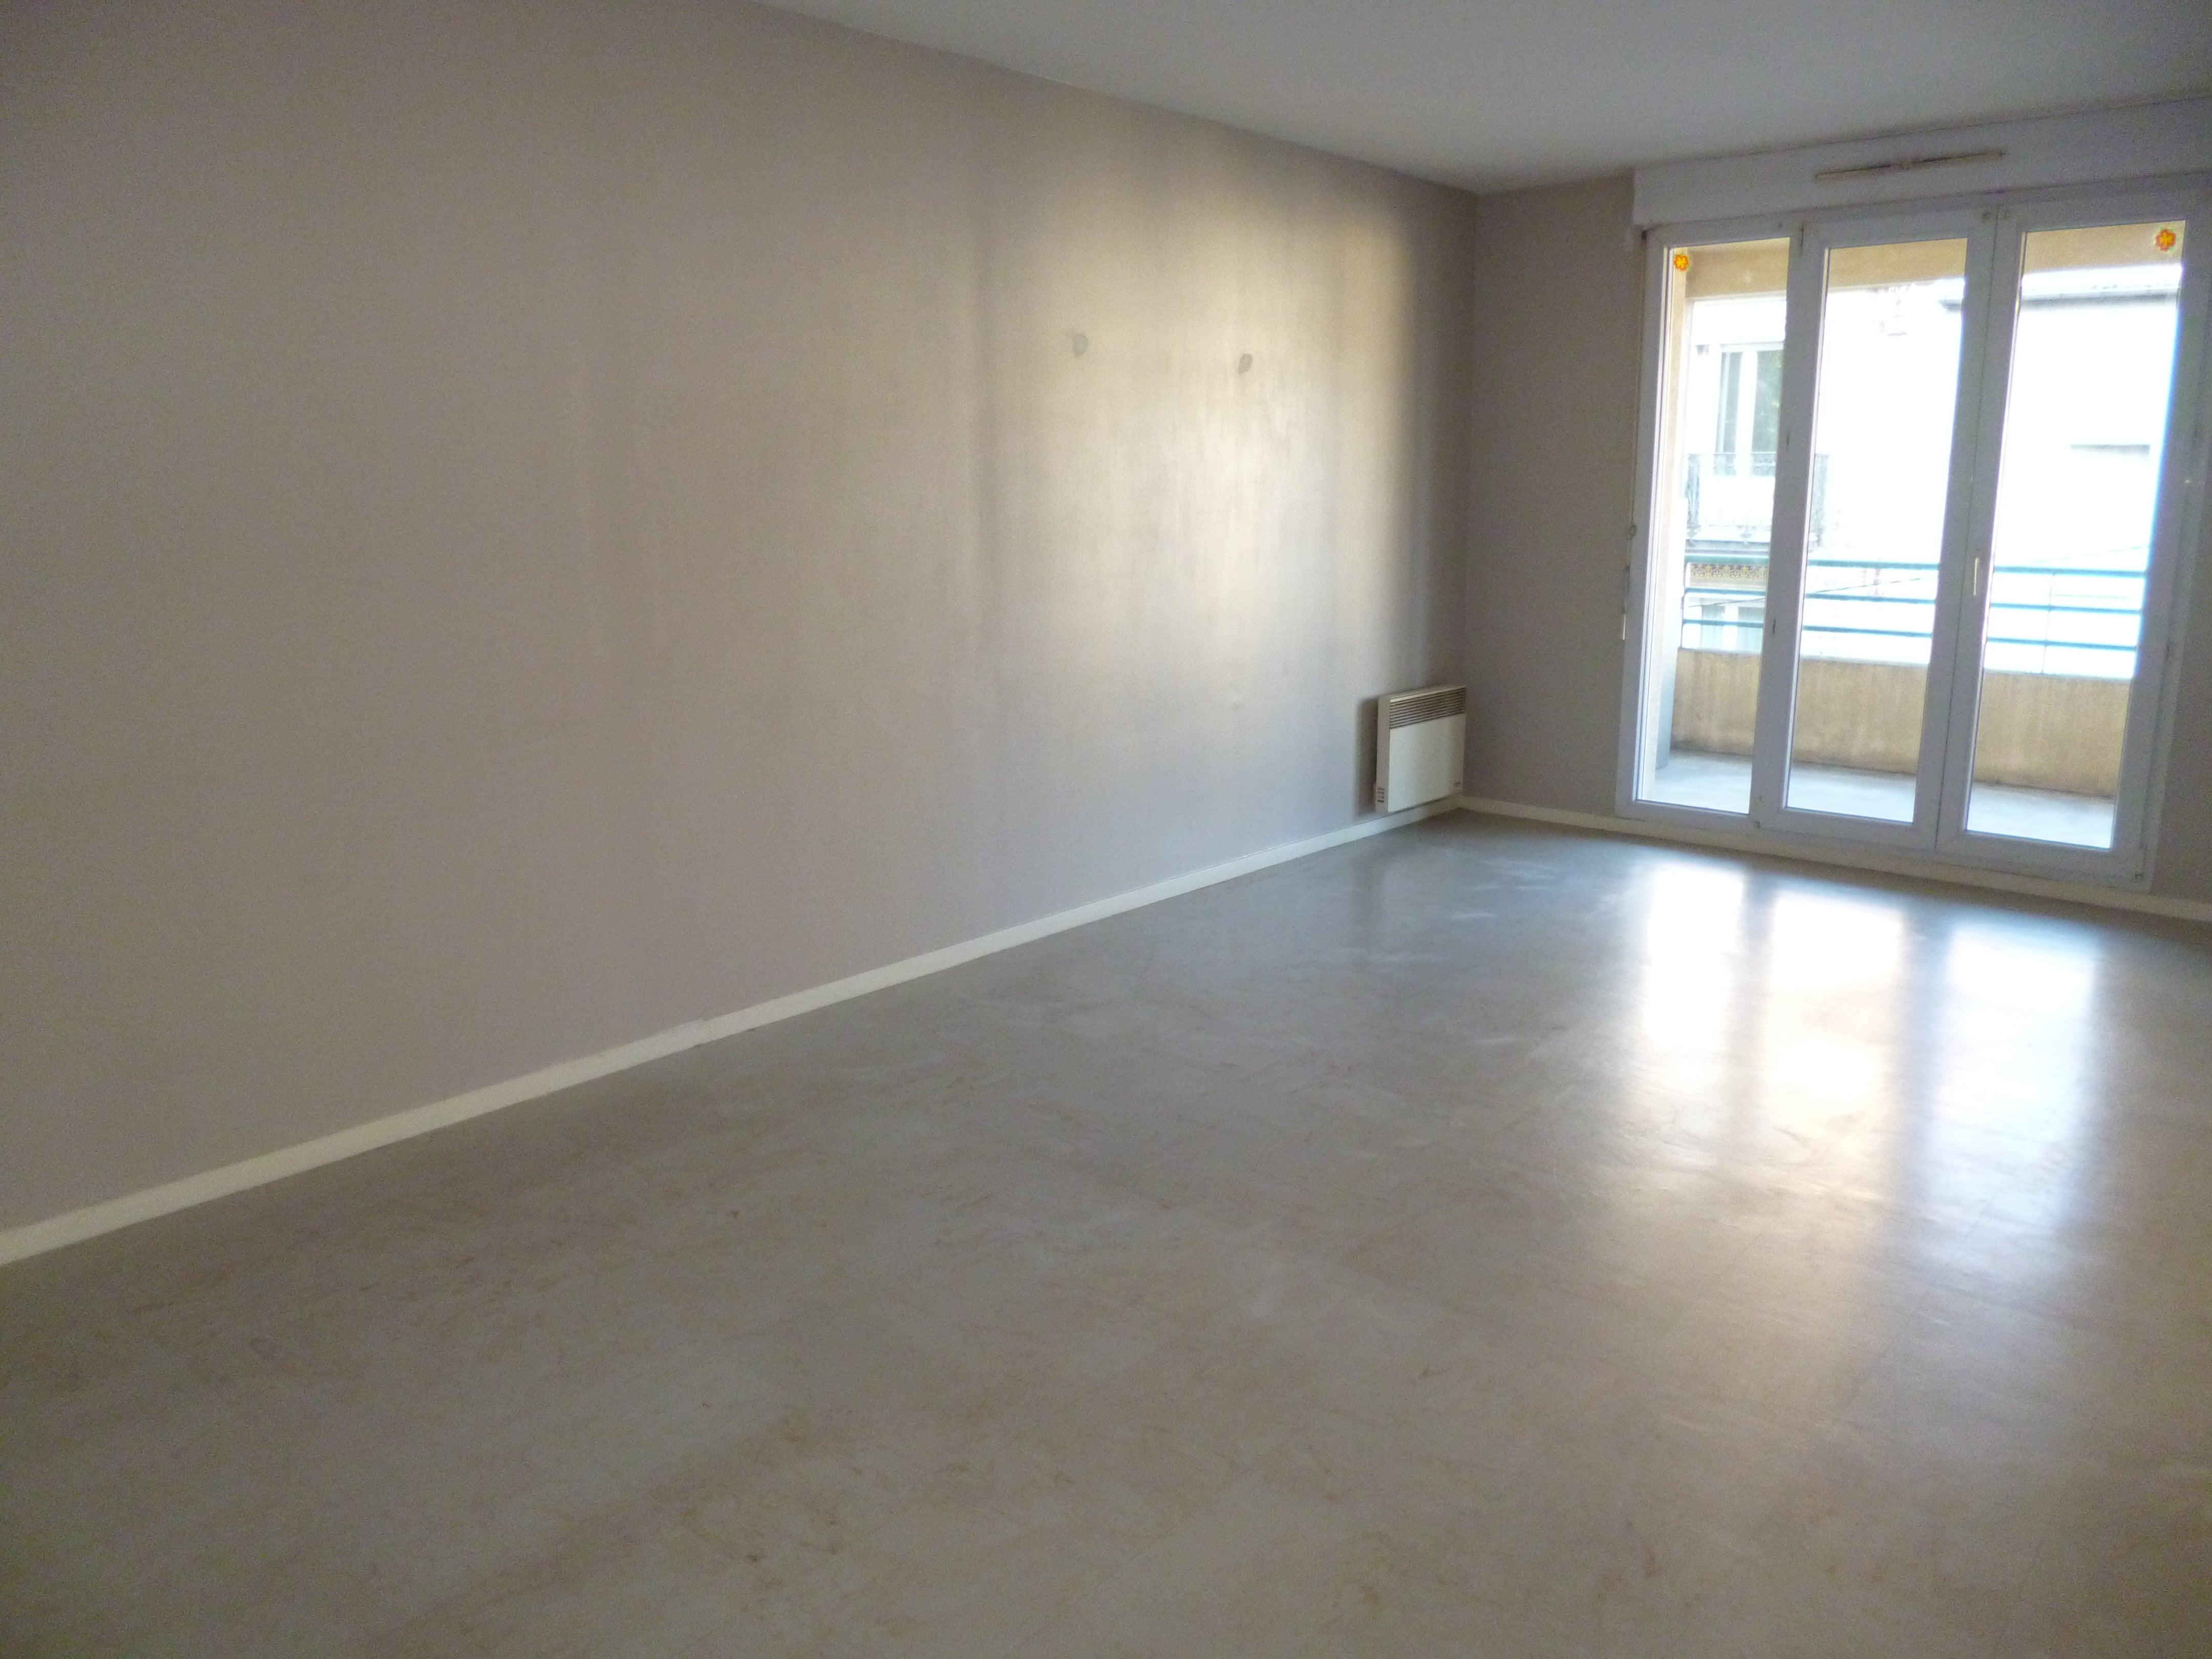 Damonte LOCATION APPARTEMENT T2 CHALONS EN CHAMPAGNE G171